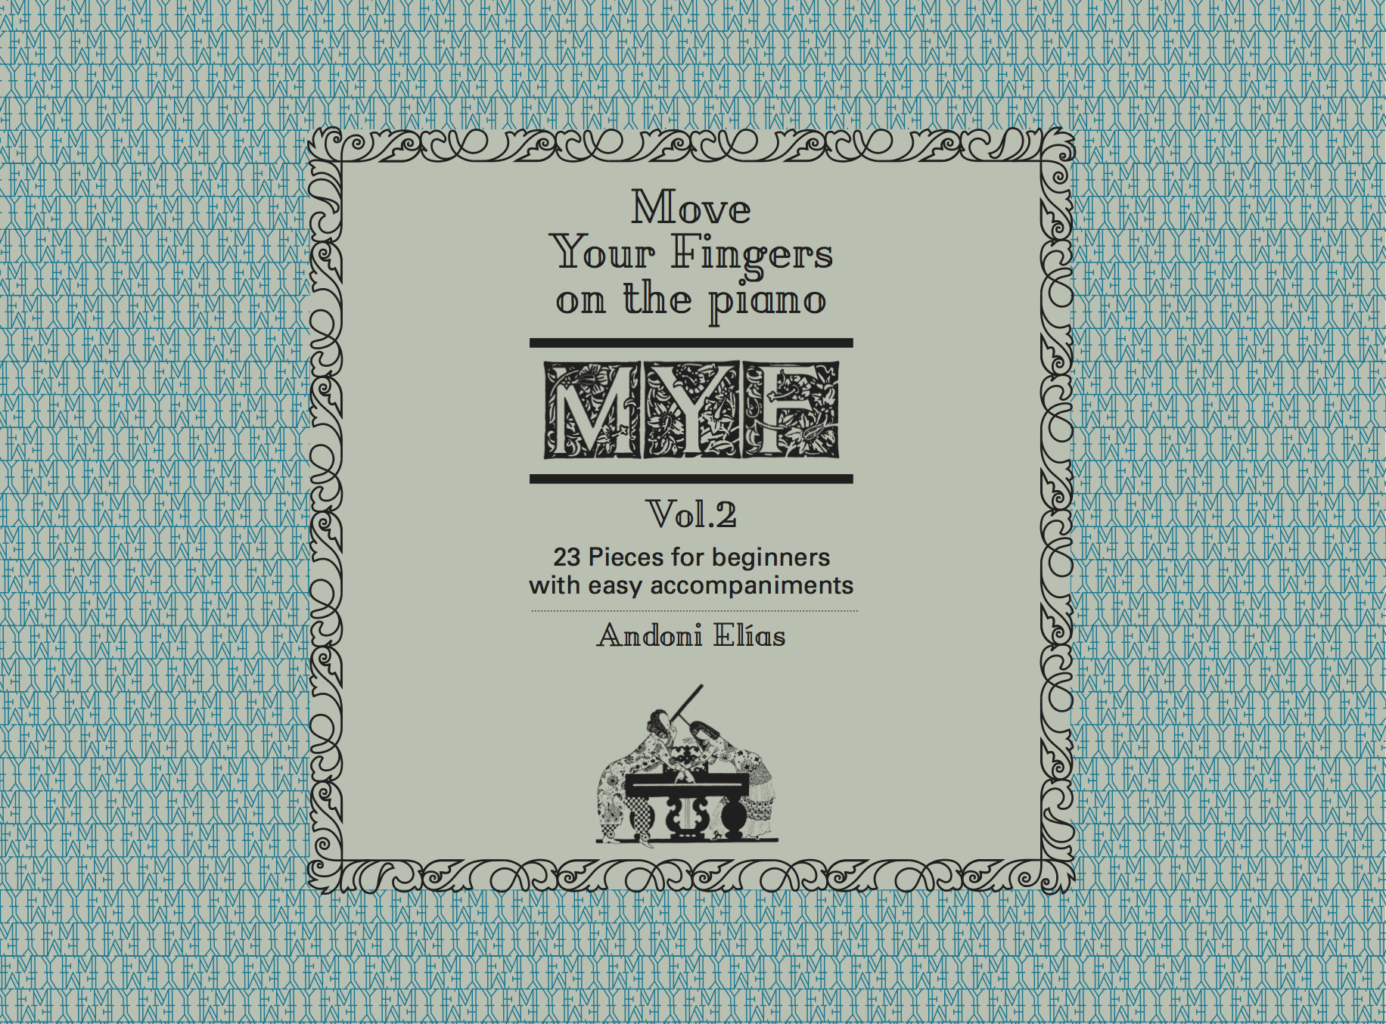 Move Your Fingers on the piano Vol. 2